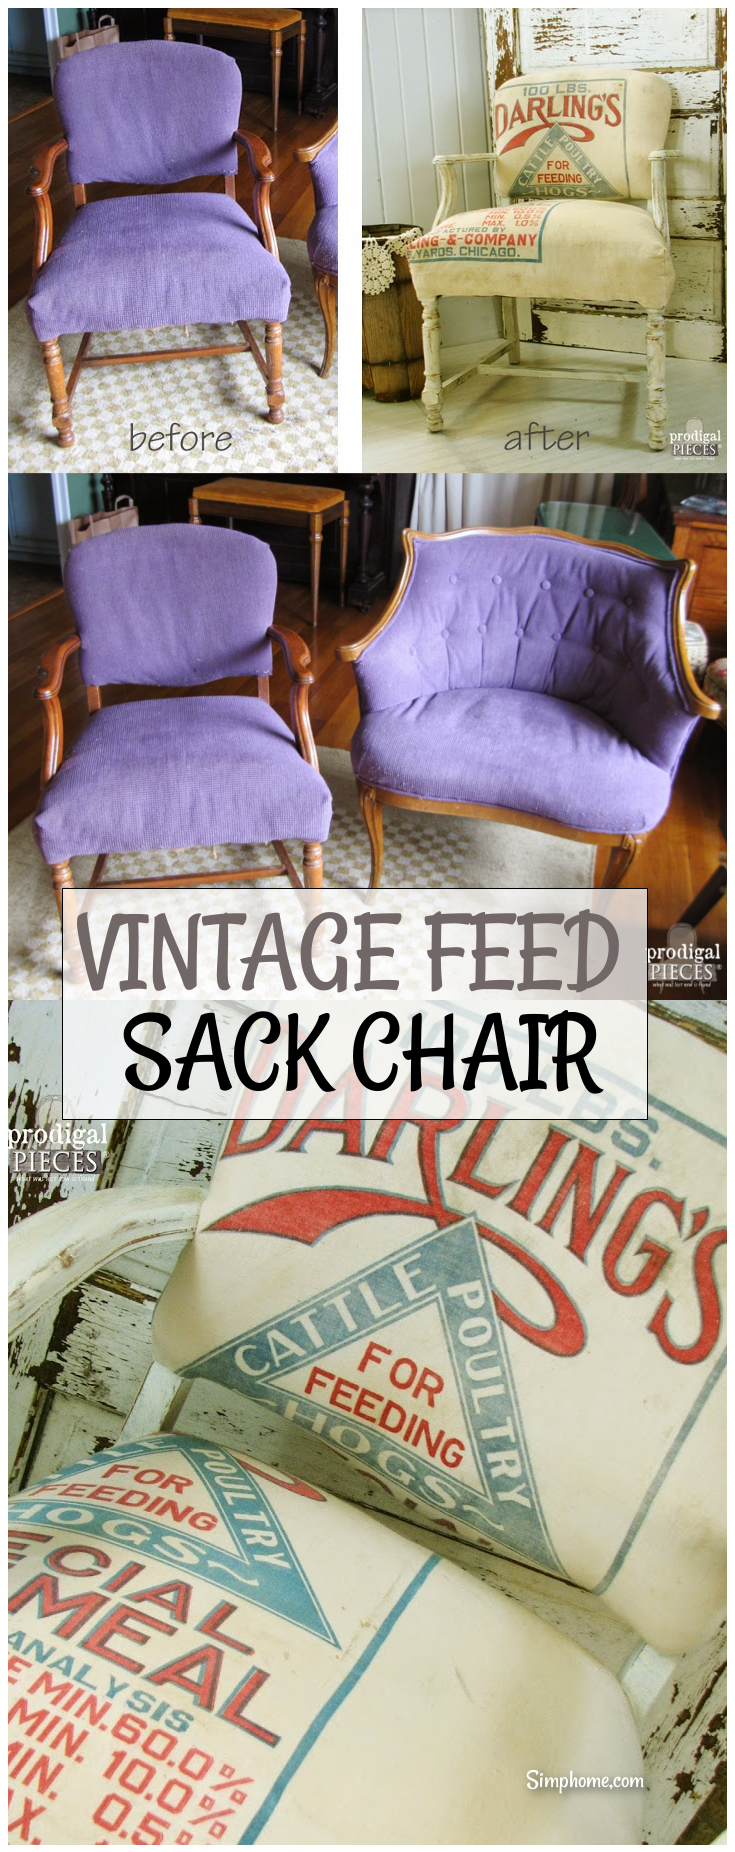 VINTAGE FEED SACK CHAIR 1 simphome com p